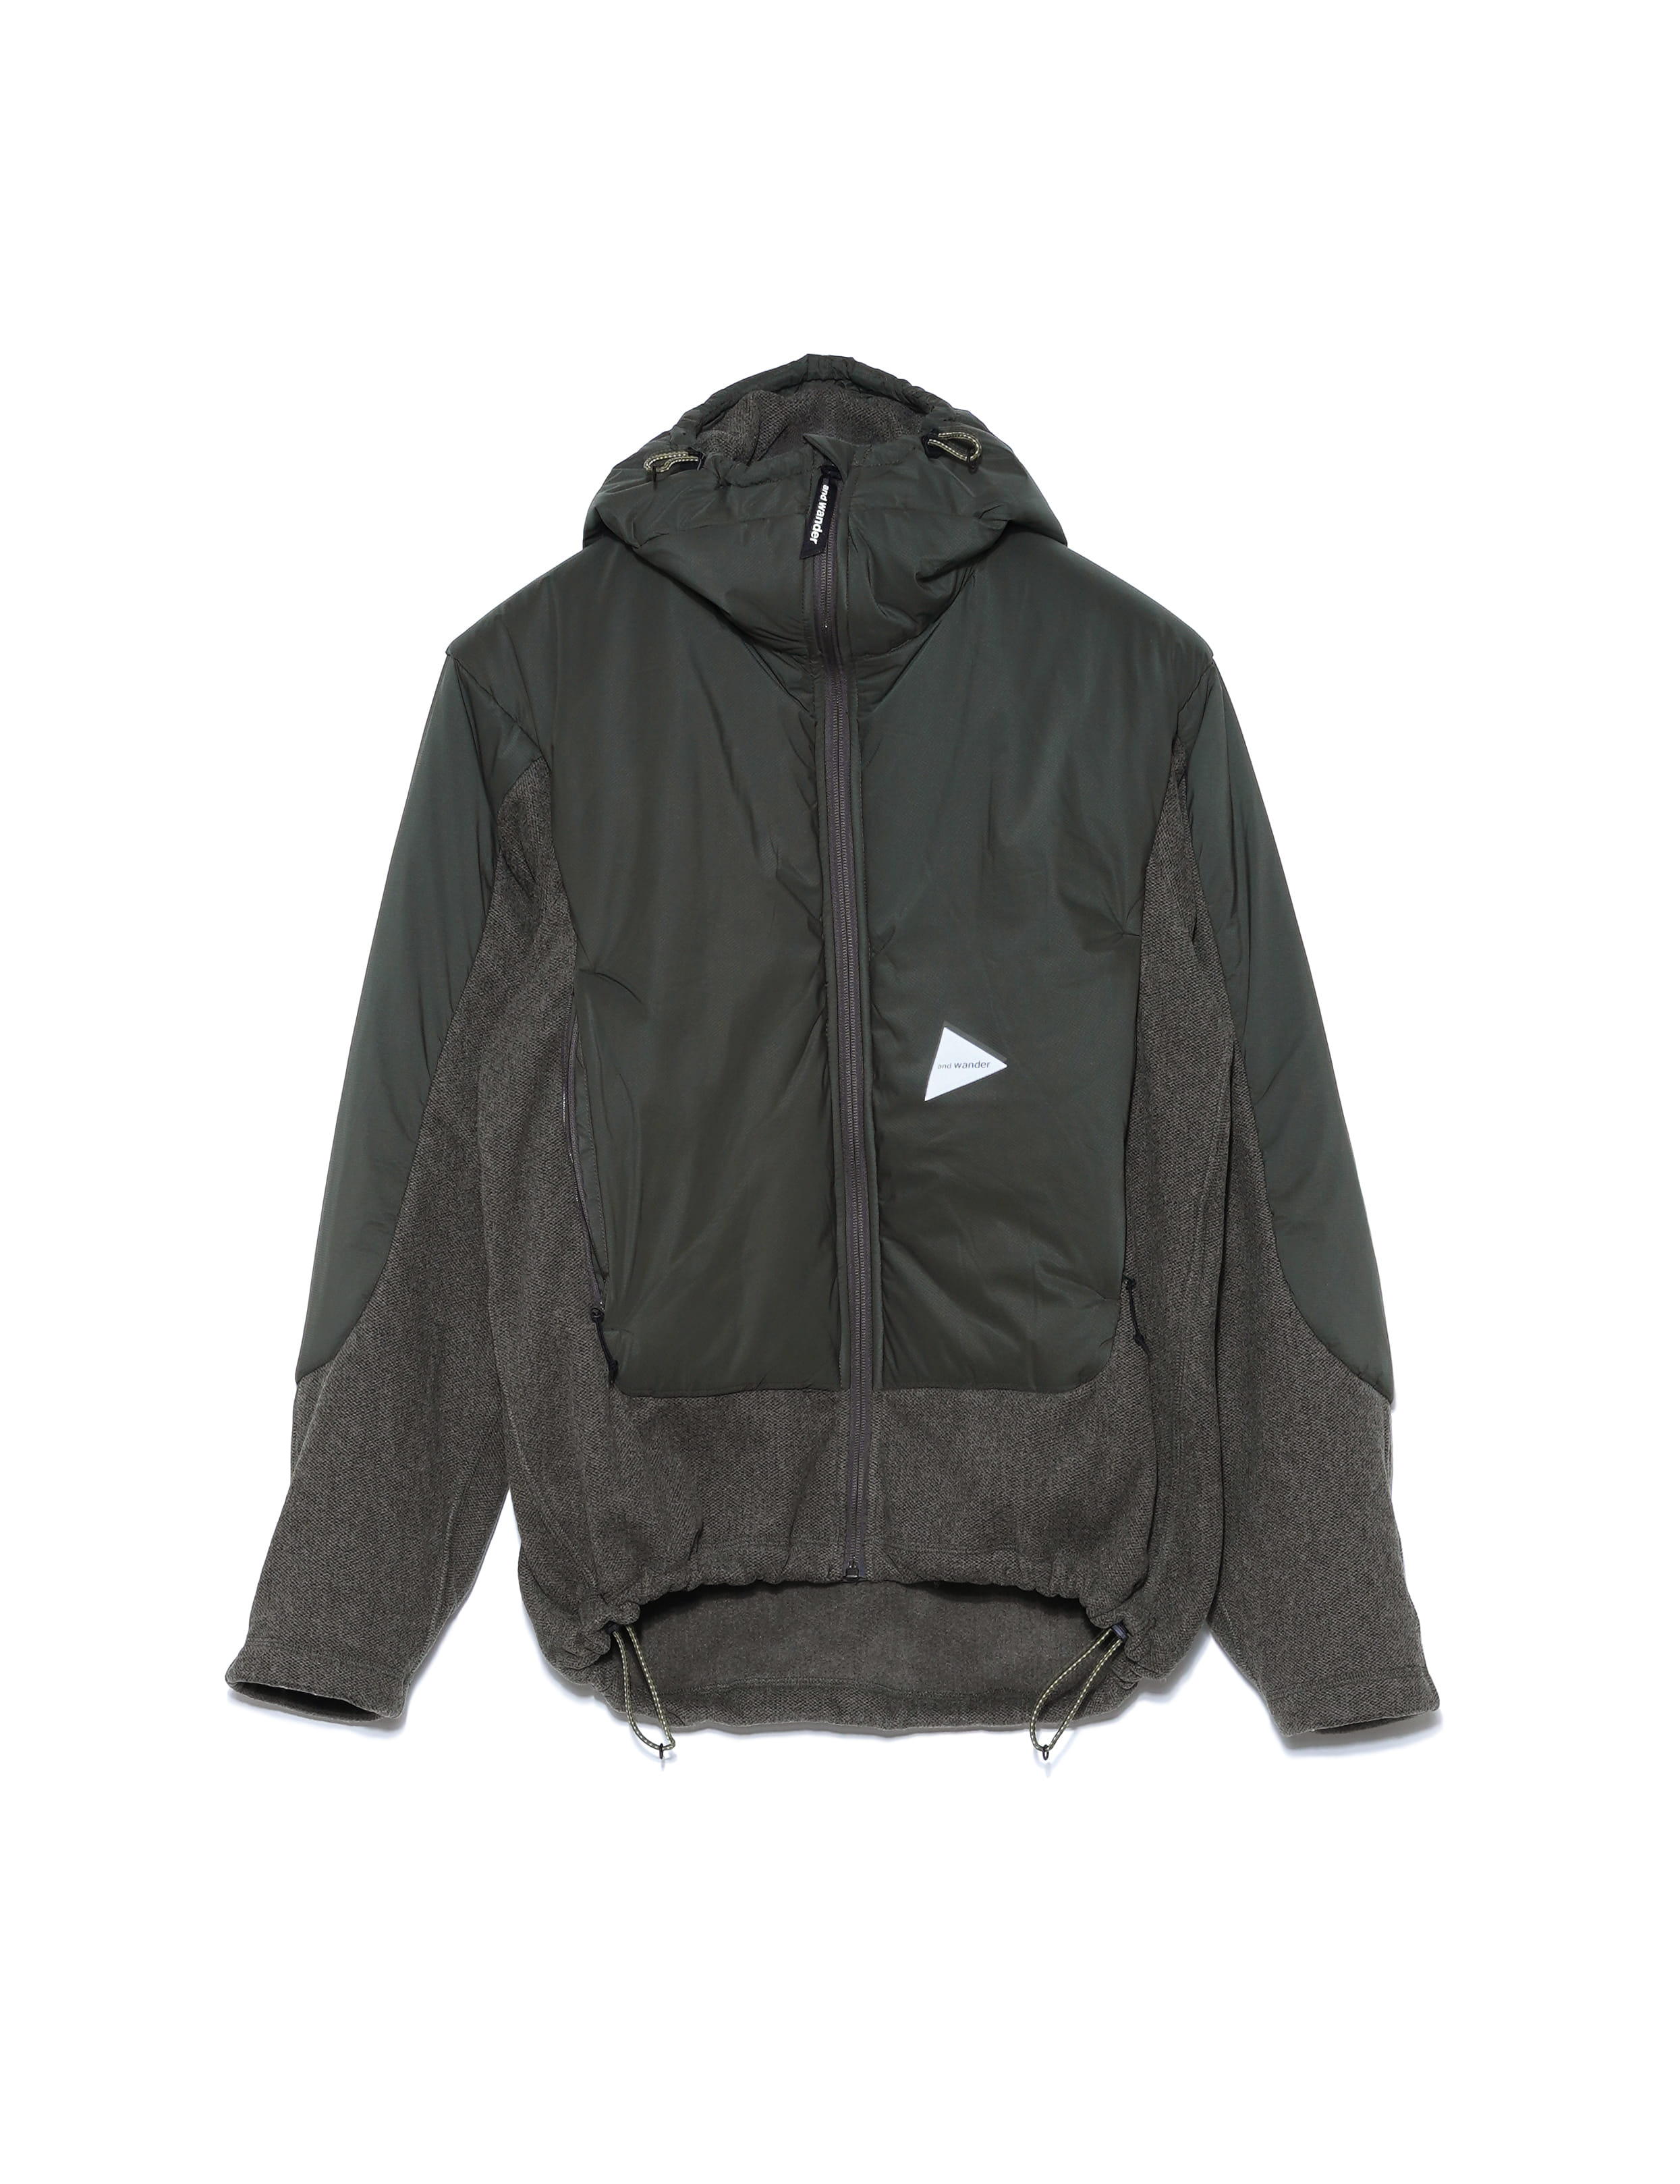 TOP FLEECE JACKET (KHAKI)